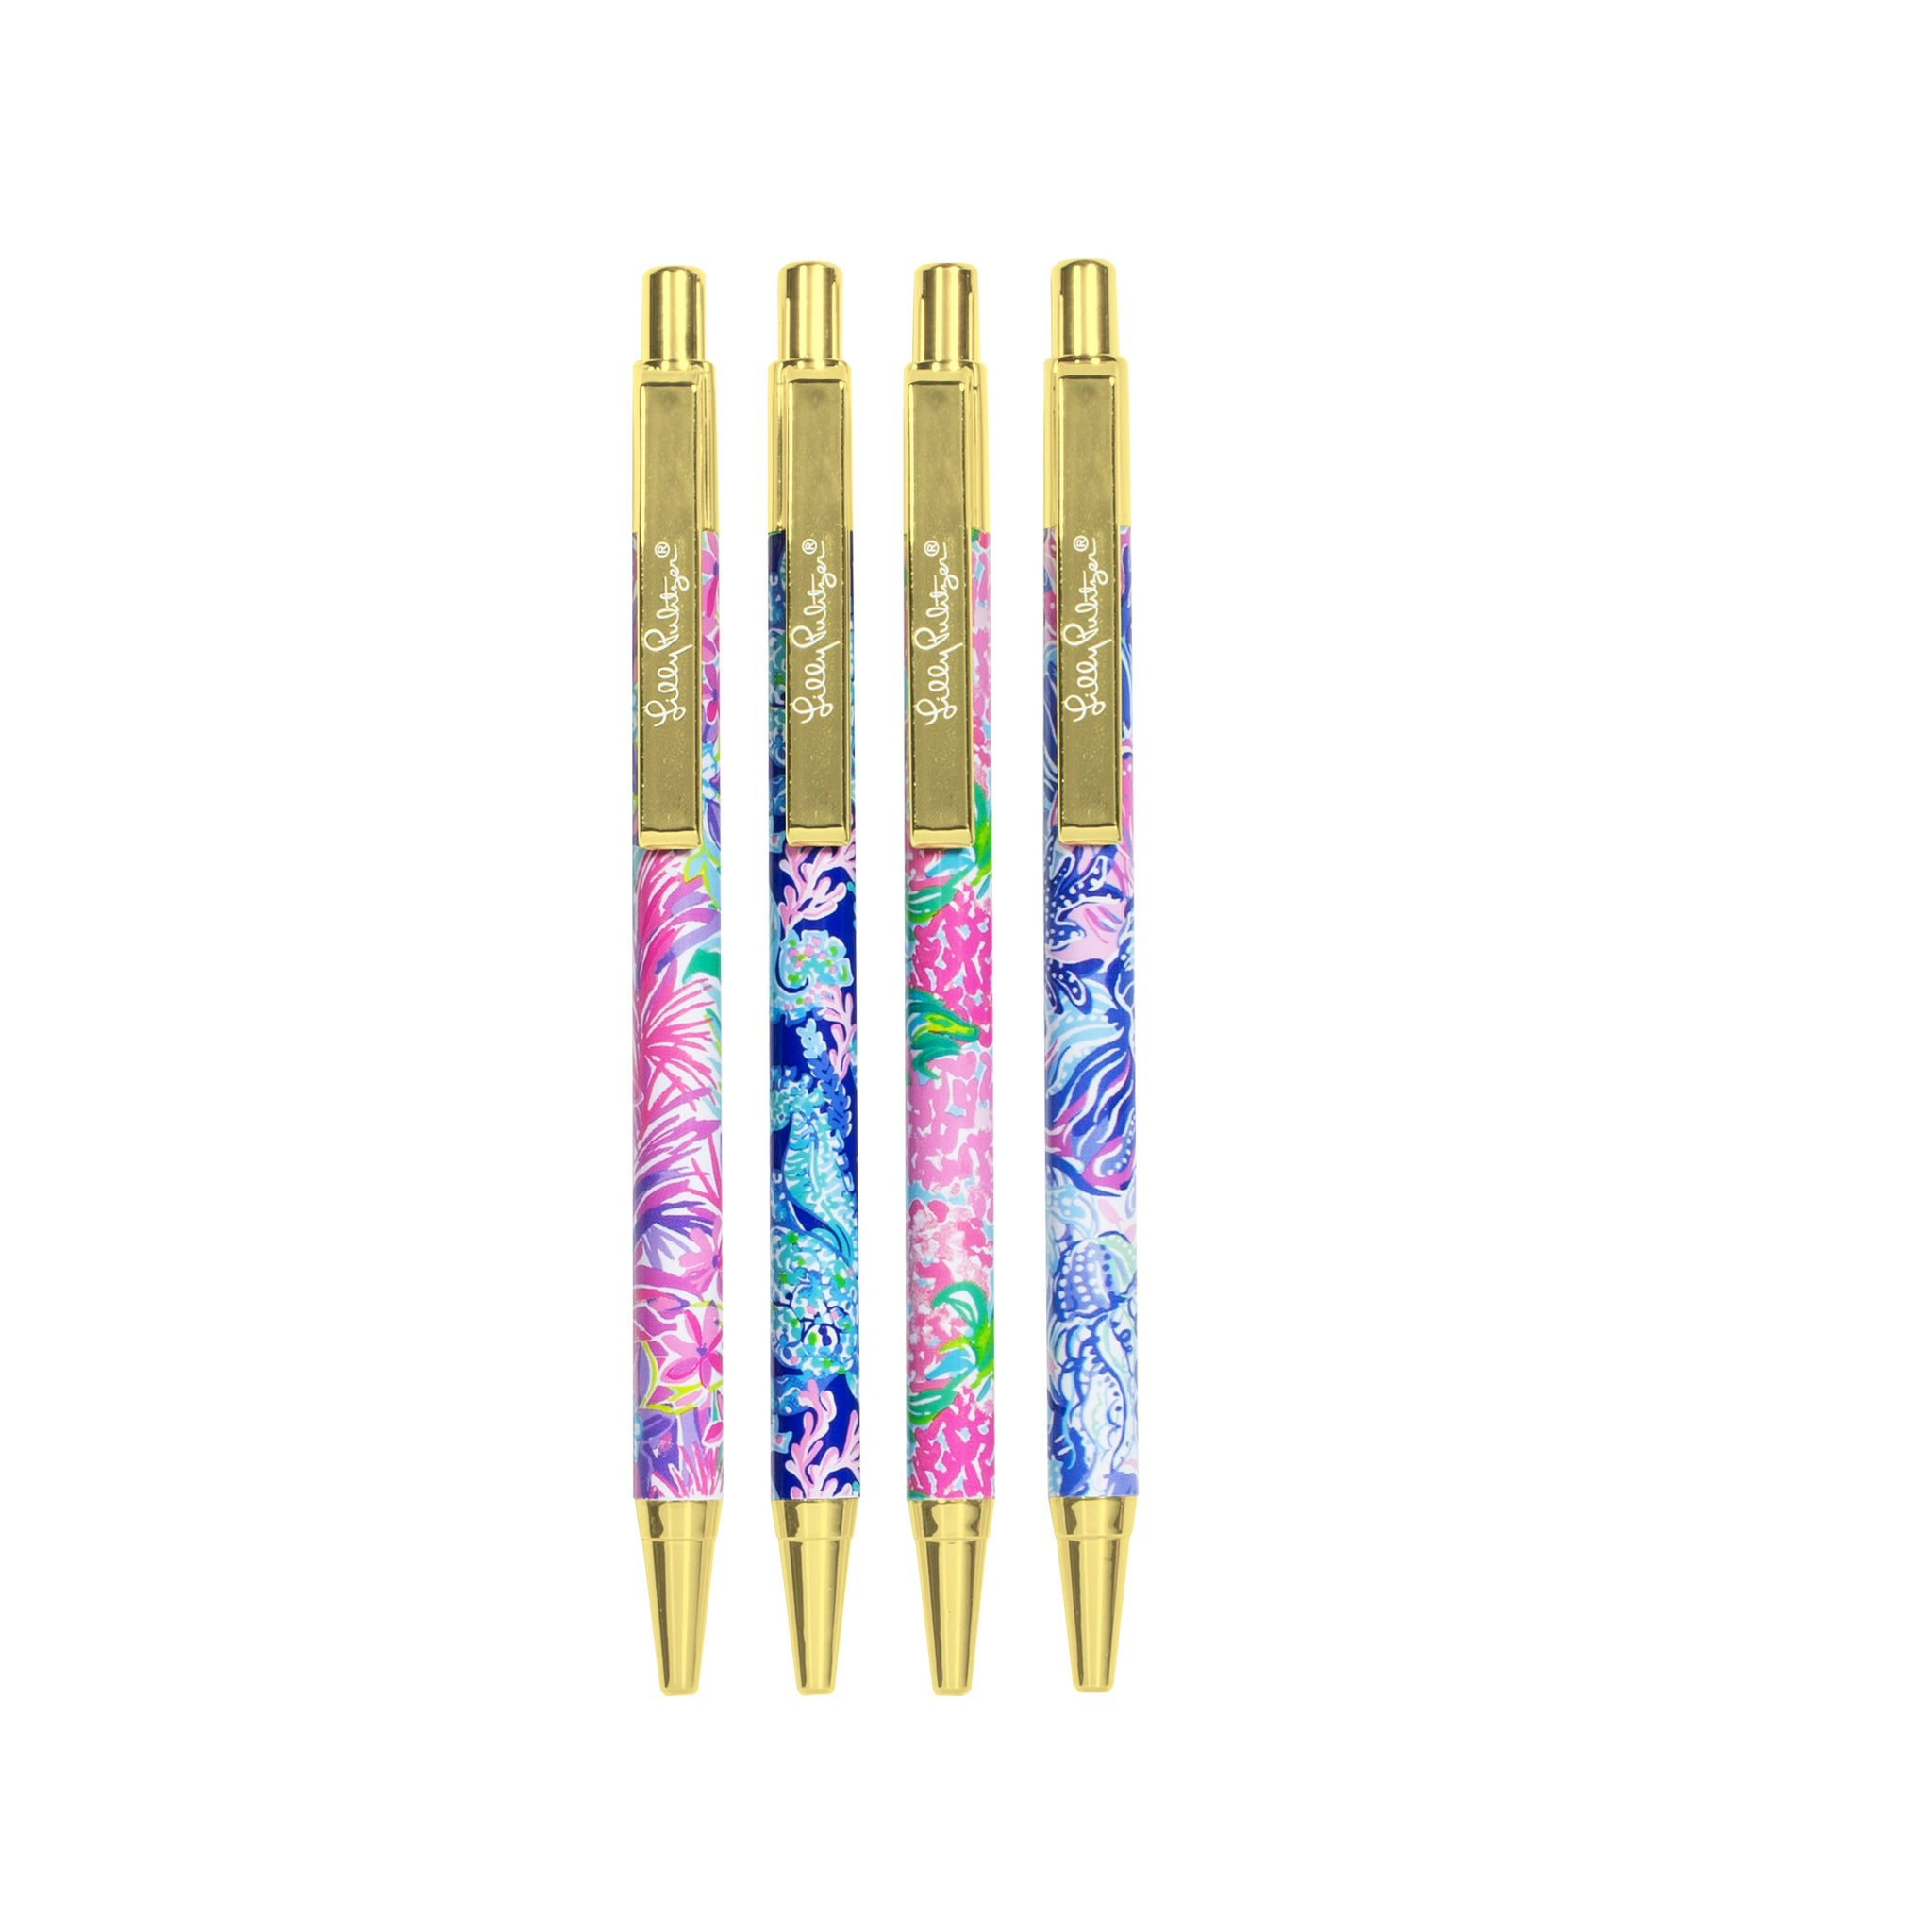 Lilly Pulitzer Ink Pen Set, Assorted